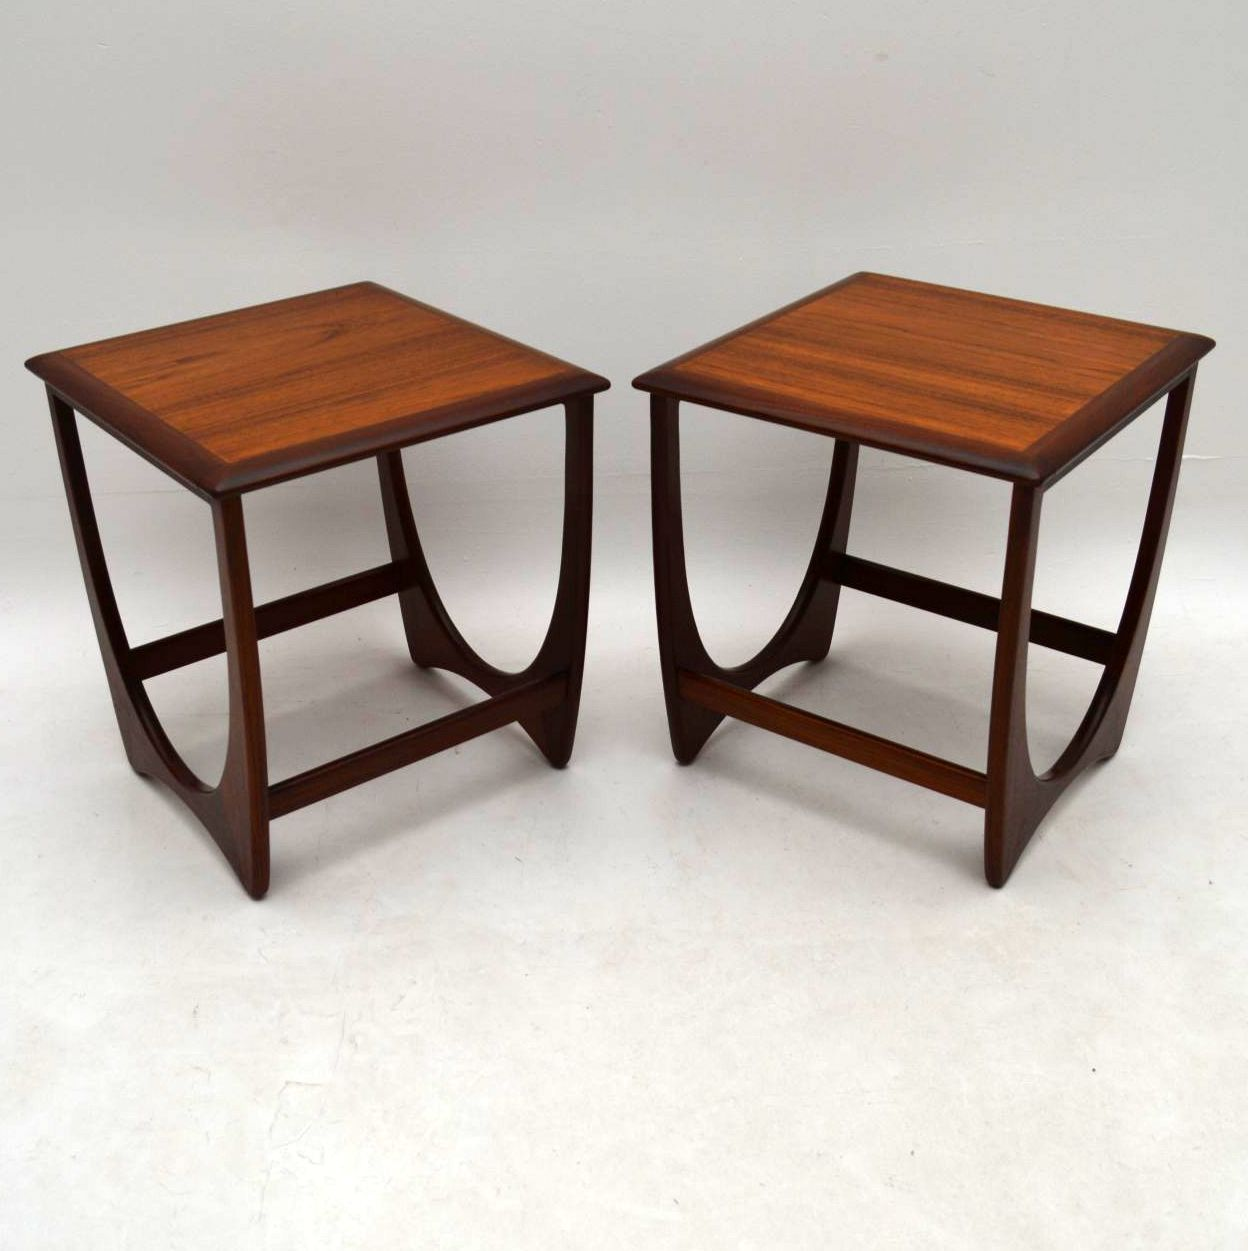 1960's Pair of Teak Side Tables by G- Plan